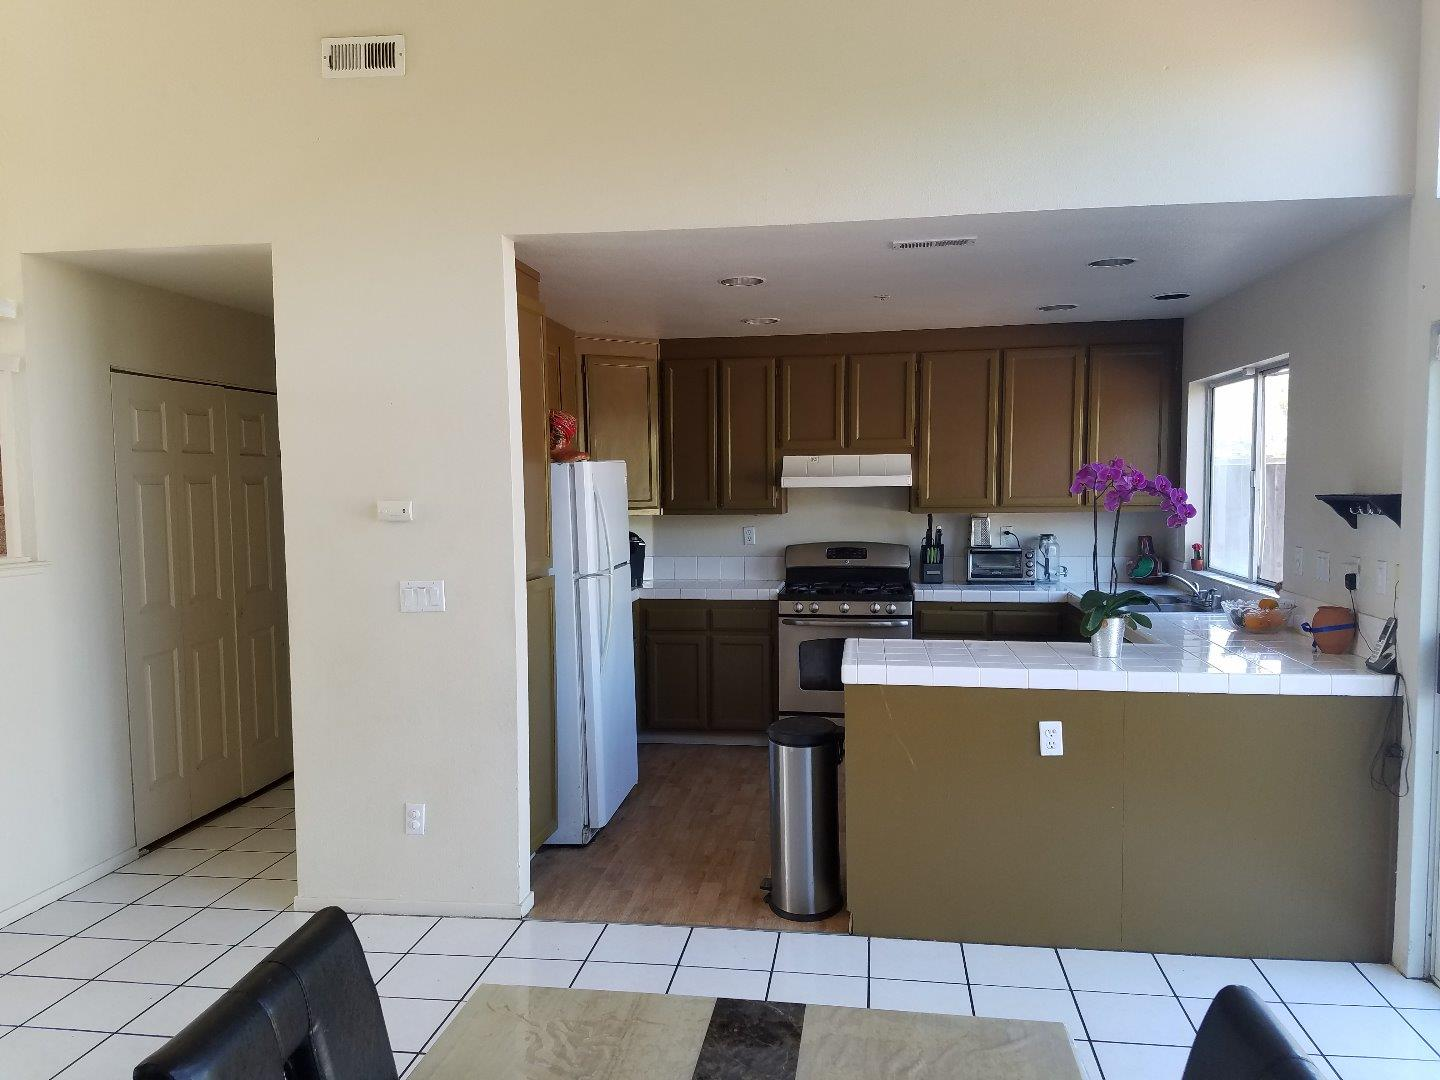 Additional photo for property listing at 727 Acapulco Way 727 Acapulco Way Salinas, California 93905 United States